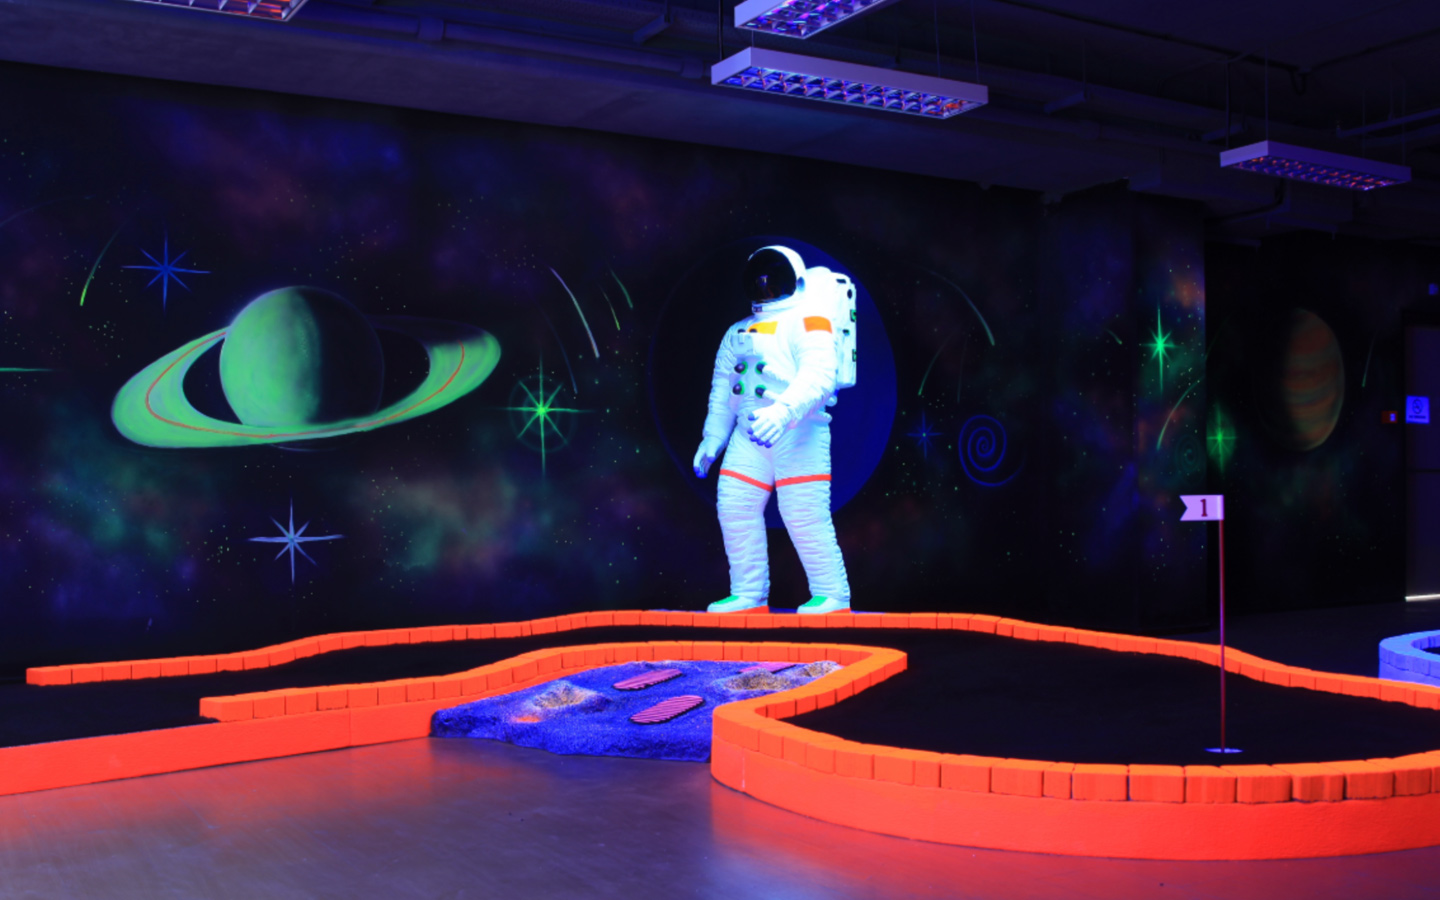 Tee and Putt offer indoor activites in Dubai as a mini golf course